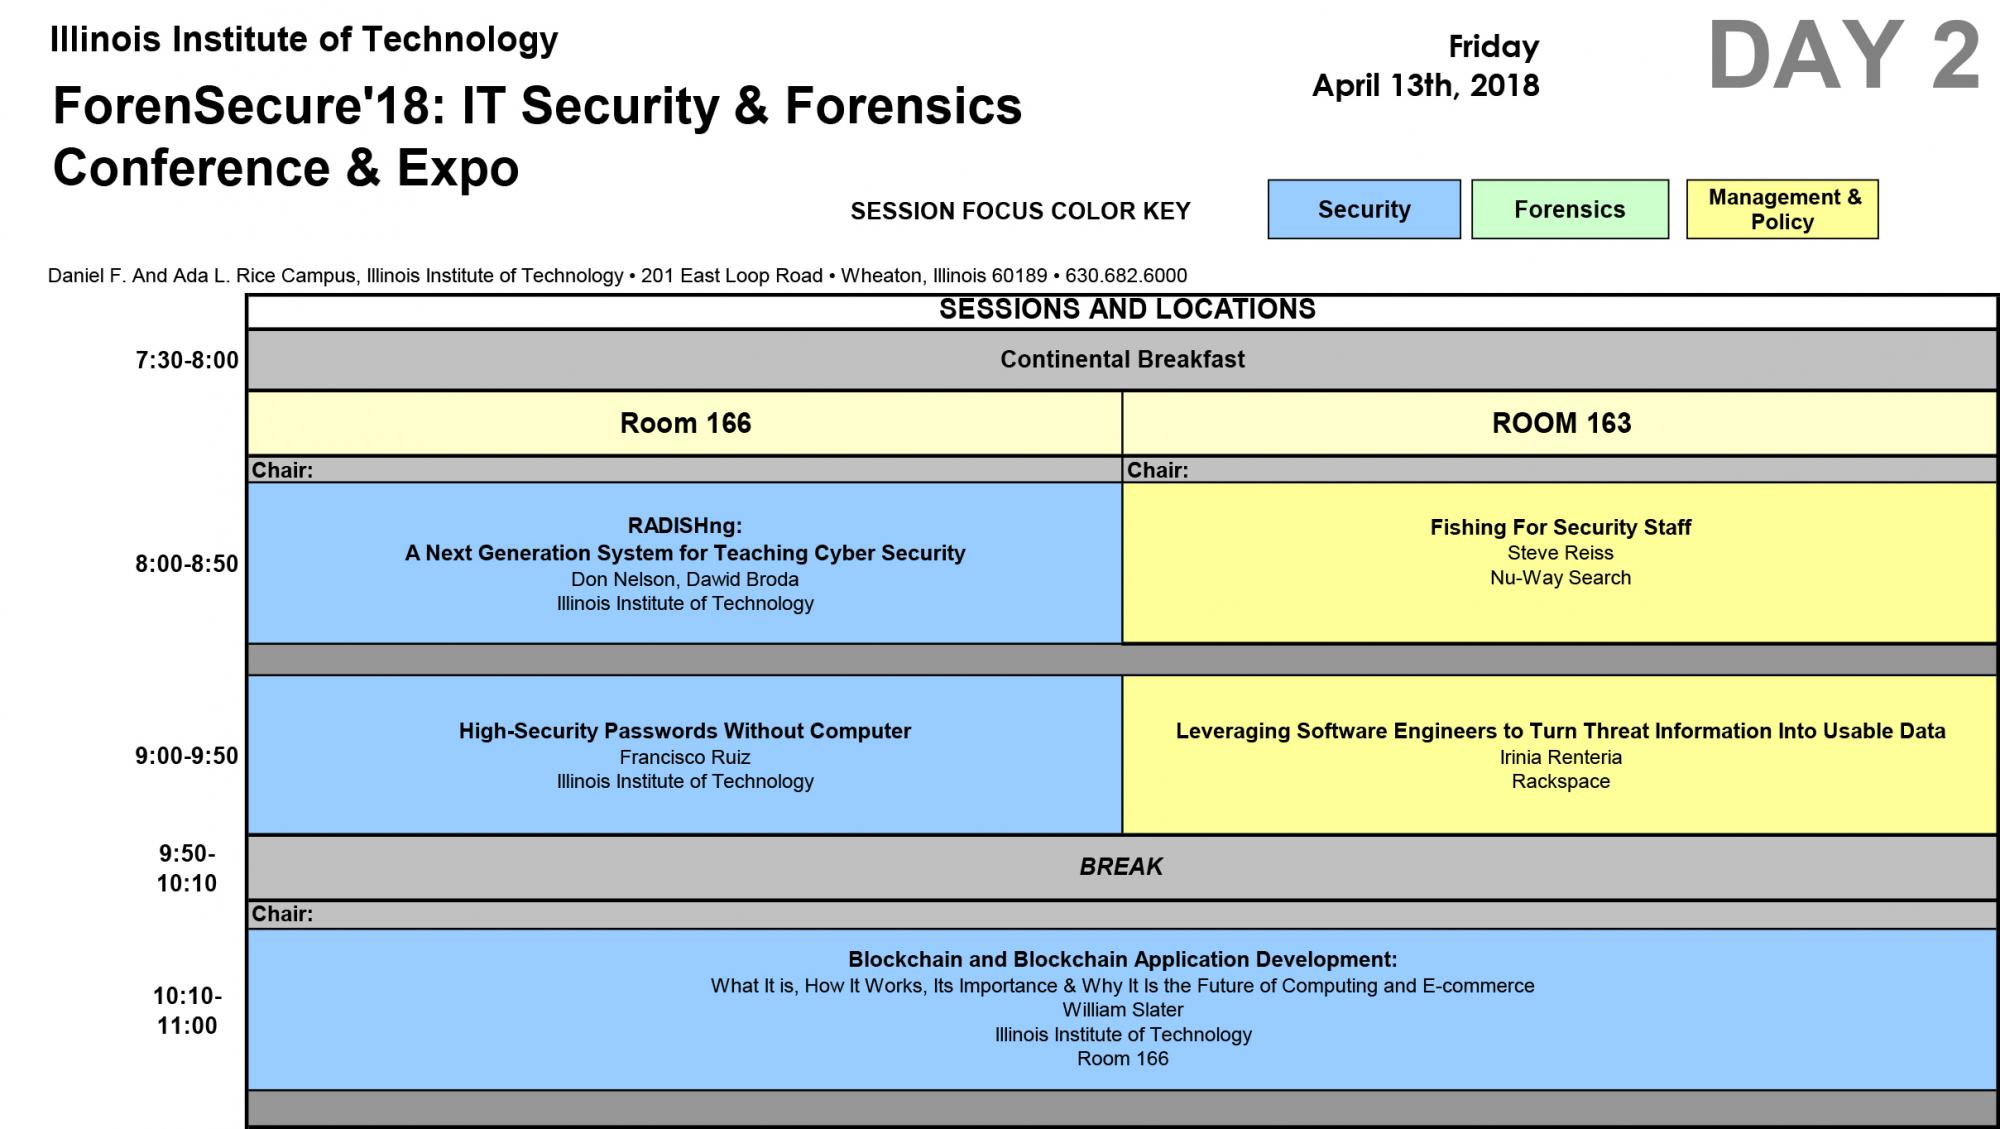 ForenSecure Schedule for Day 2